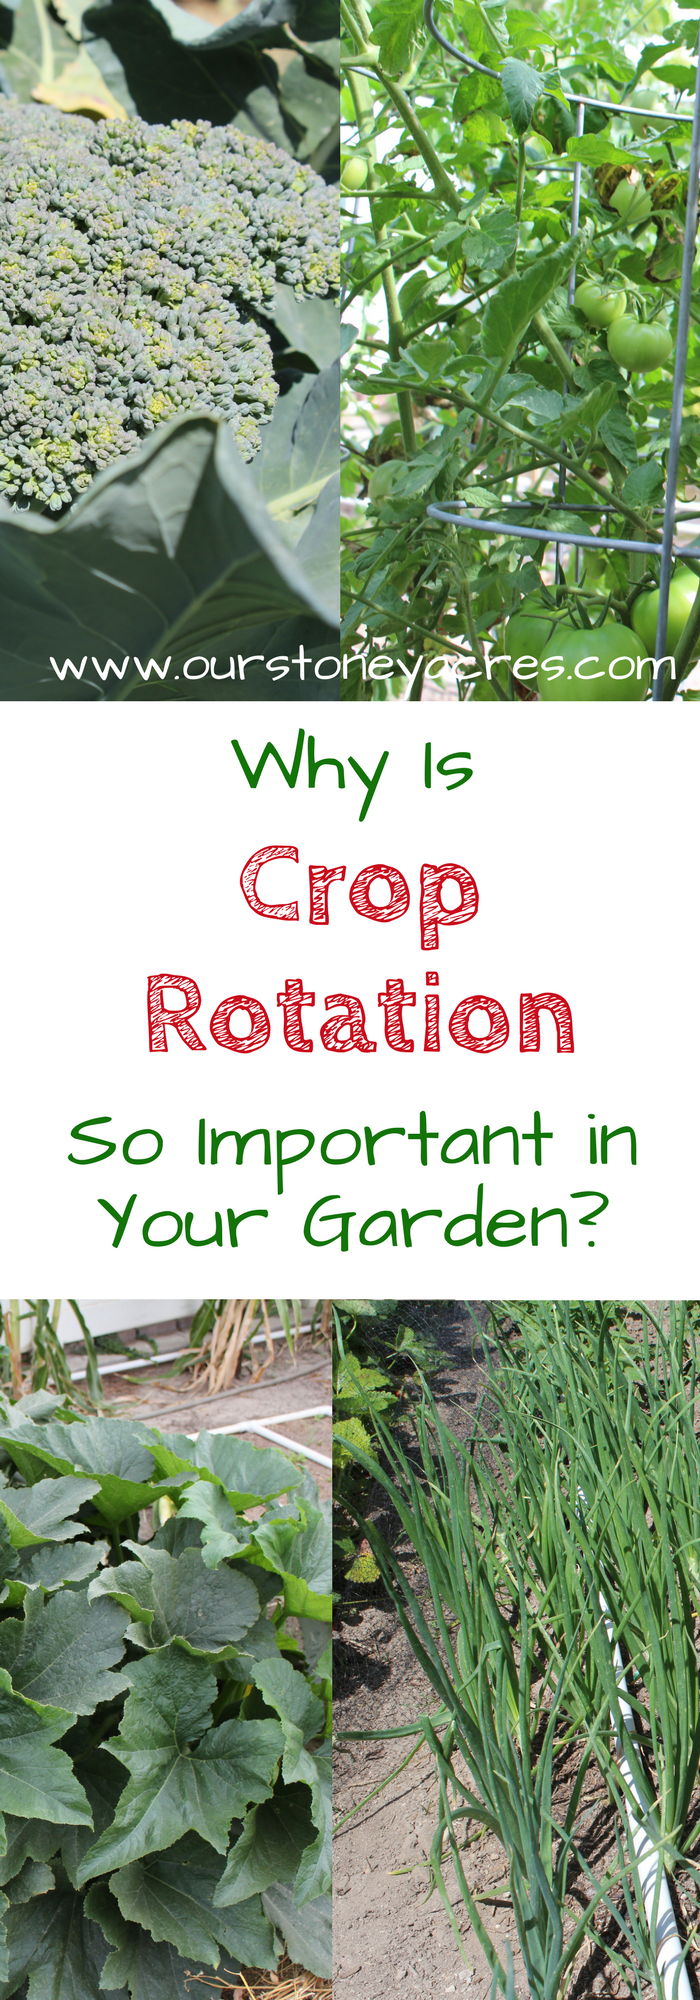 importance of crop rotation crop rotation in the home garden is an important principal that